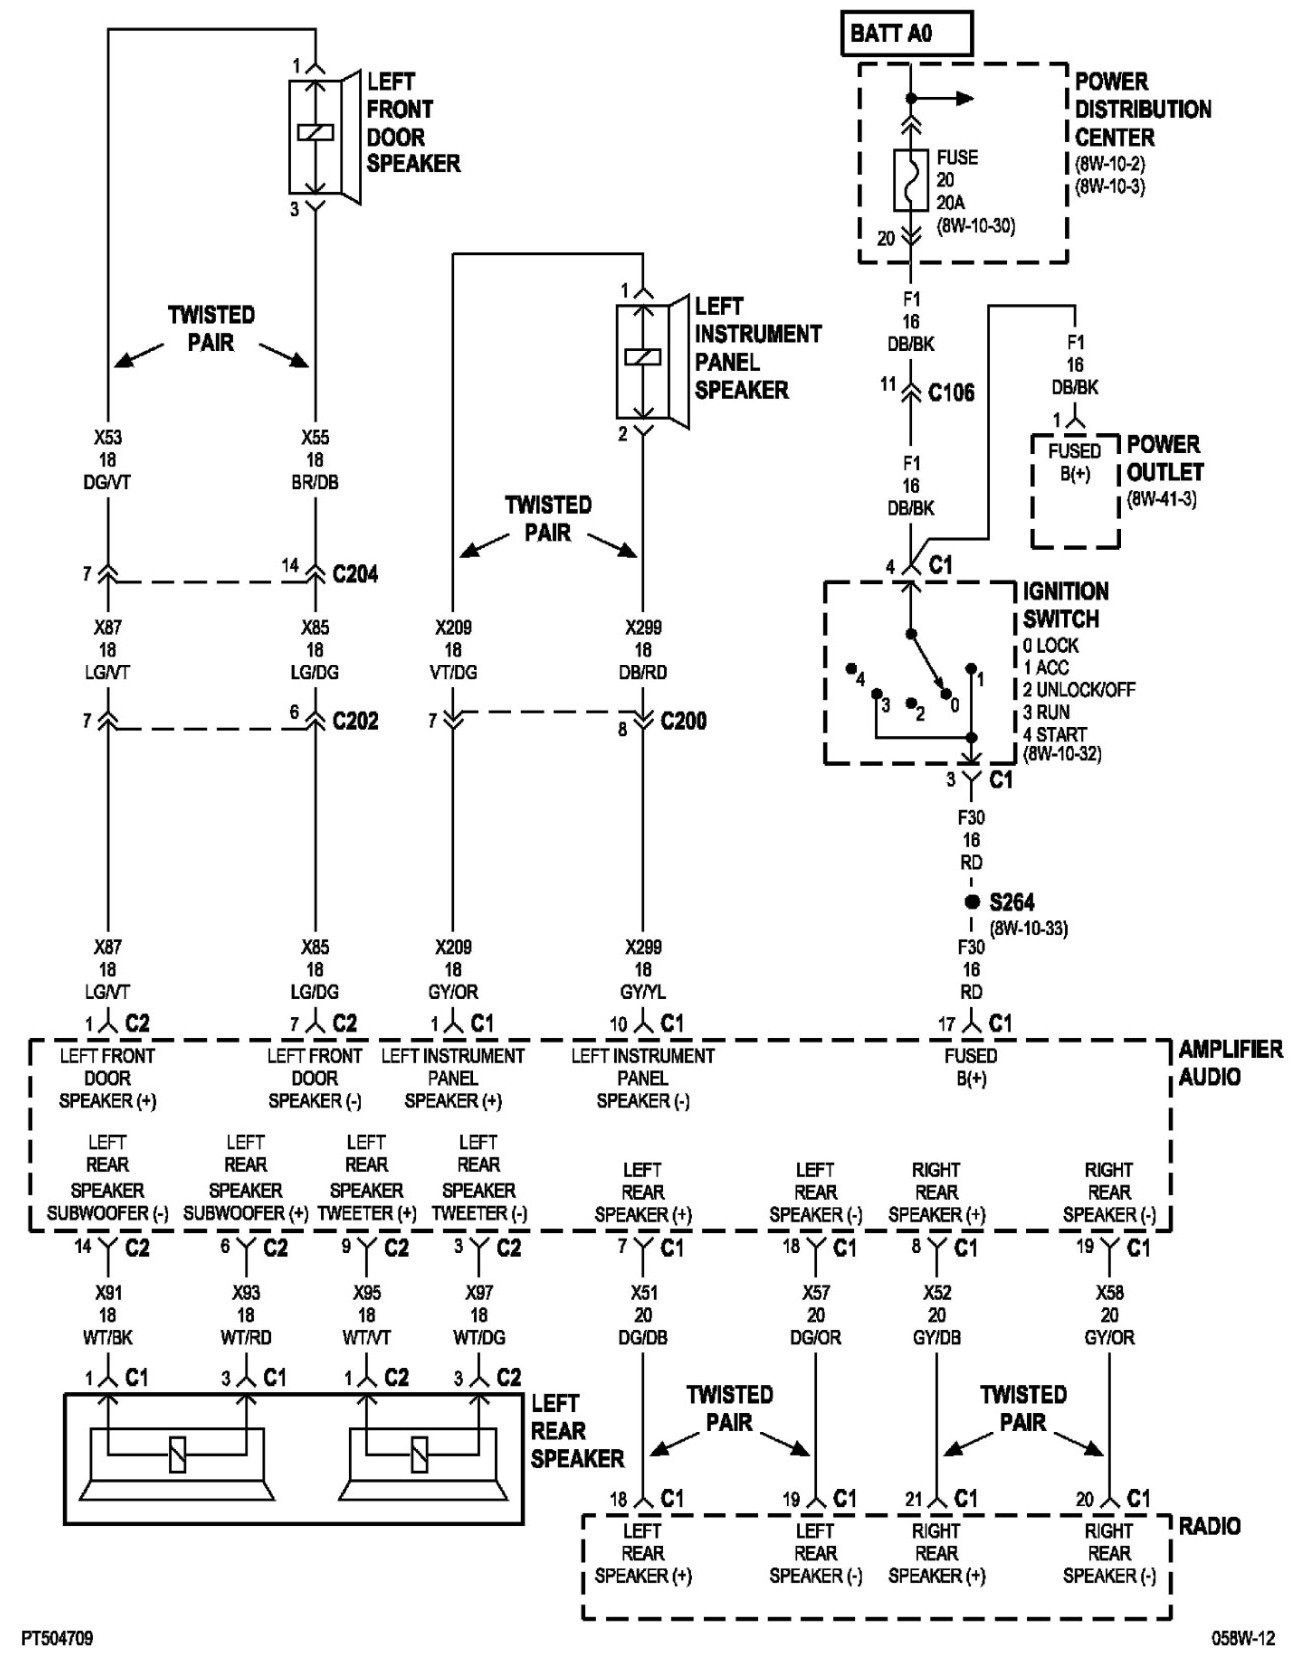 Unique Wiring Diagram For Electric Fan Diagram Diagramsample Diagramtemplate Wiringdiagram Diagramchart Electric Radiator Fan Cruisers Electrical Diagram